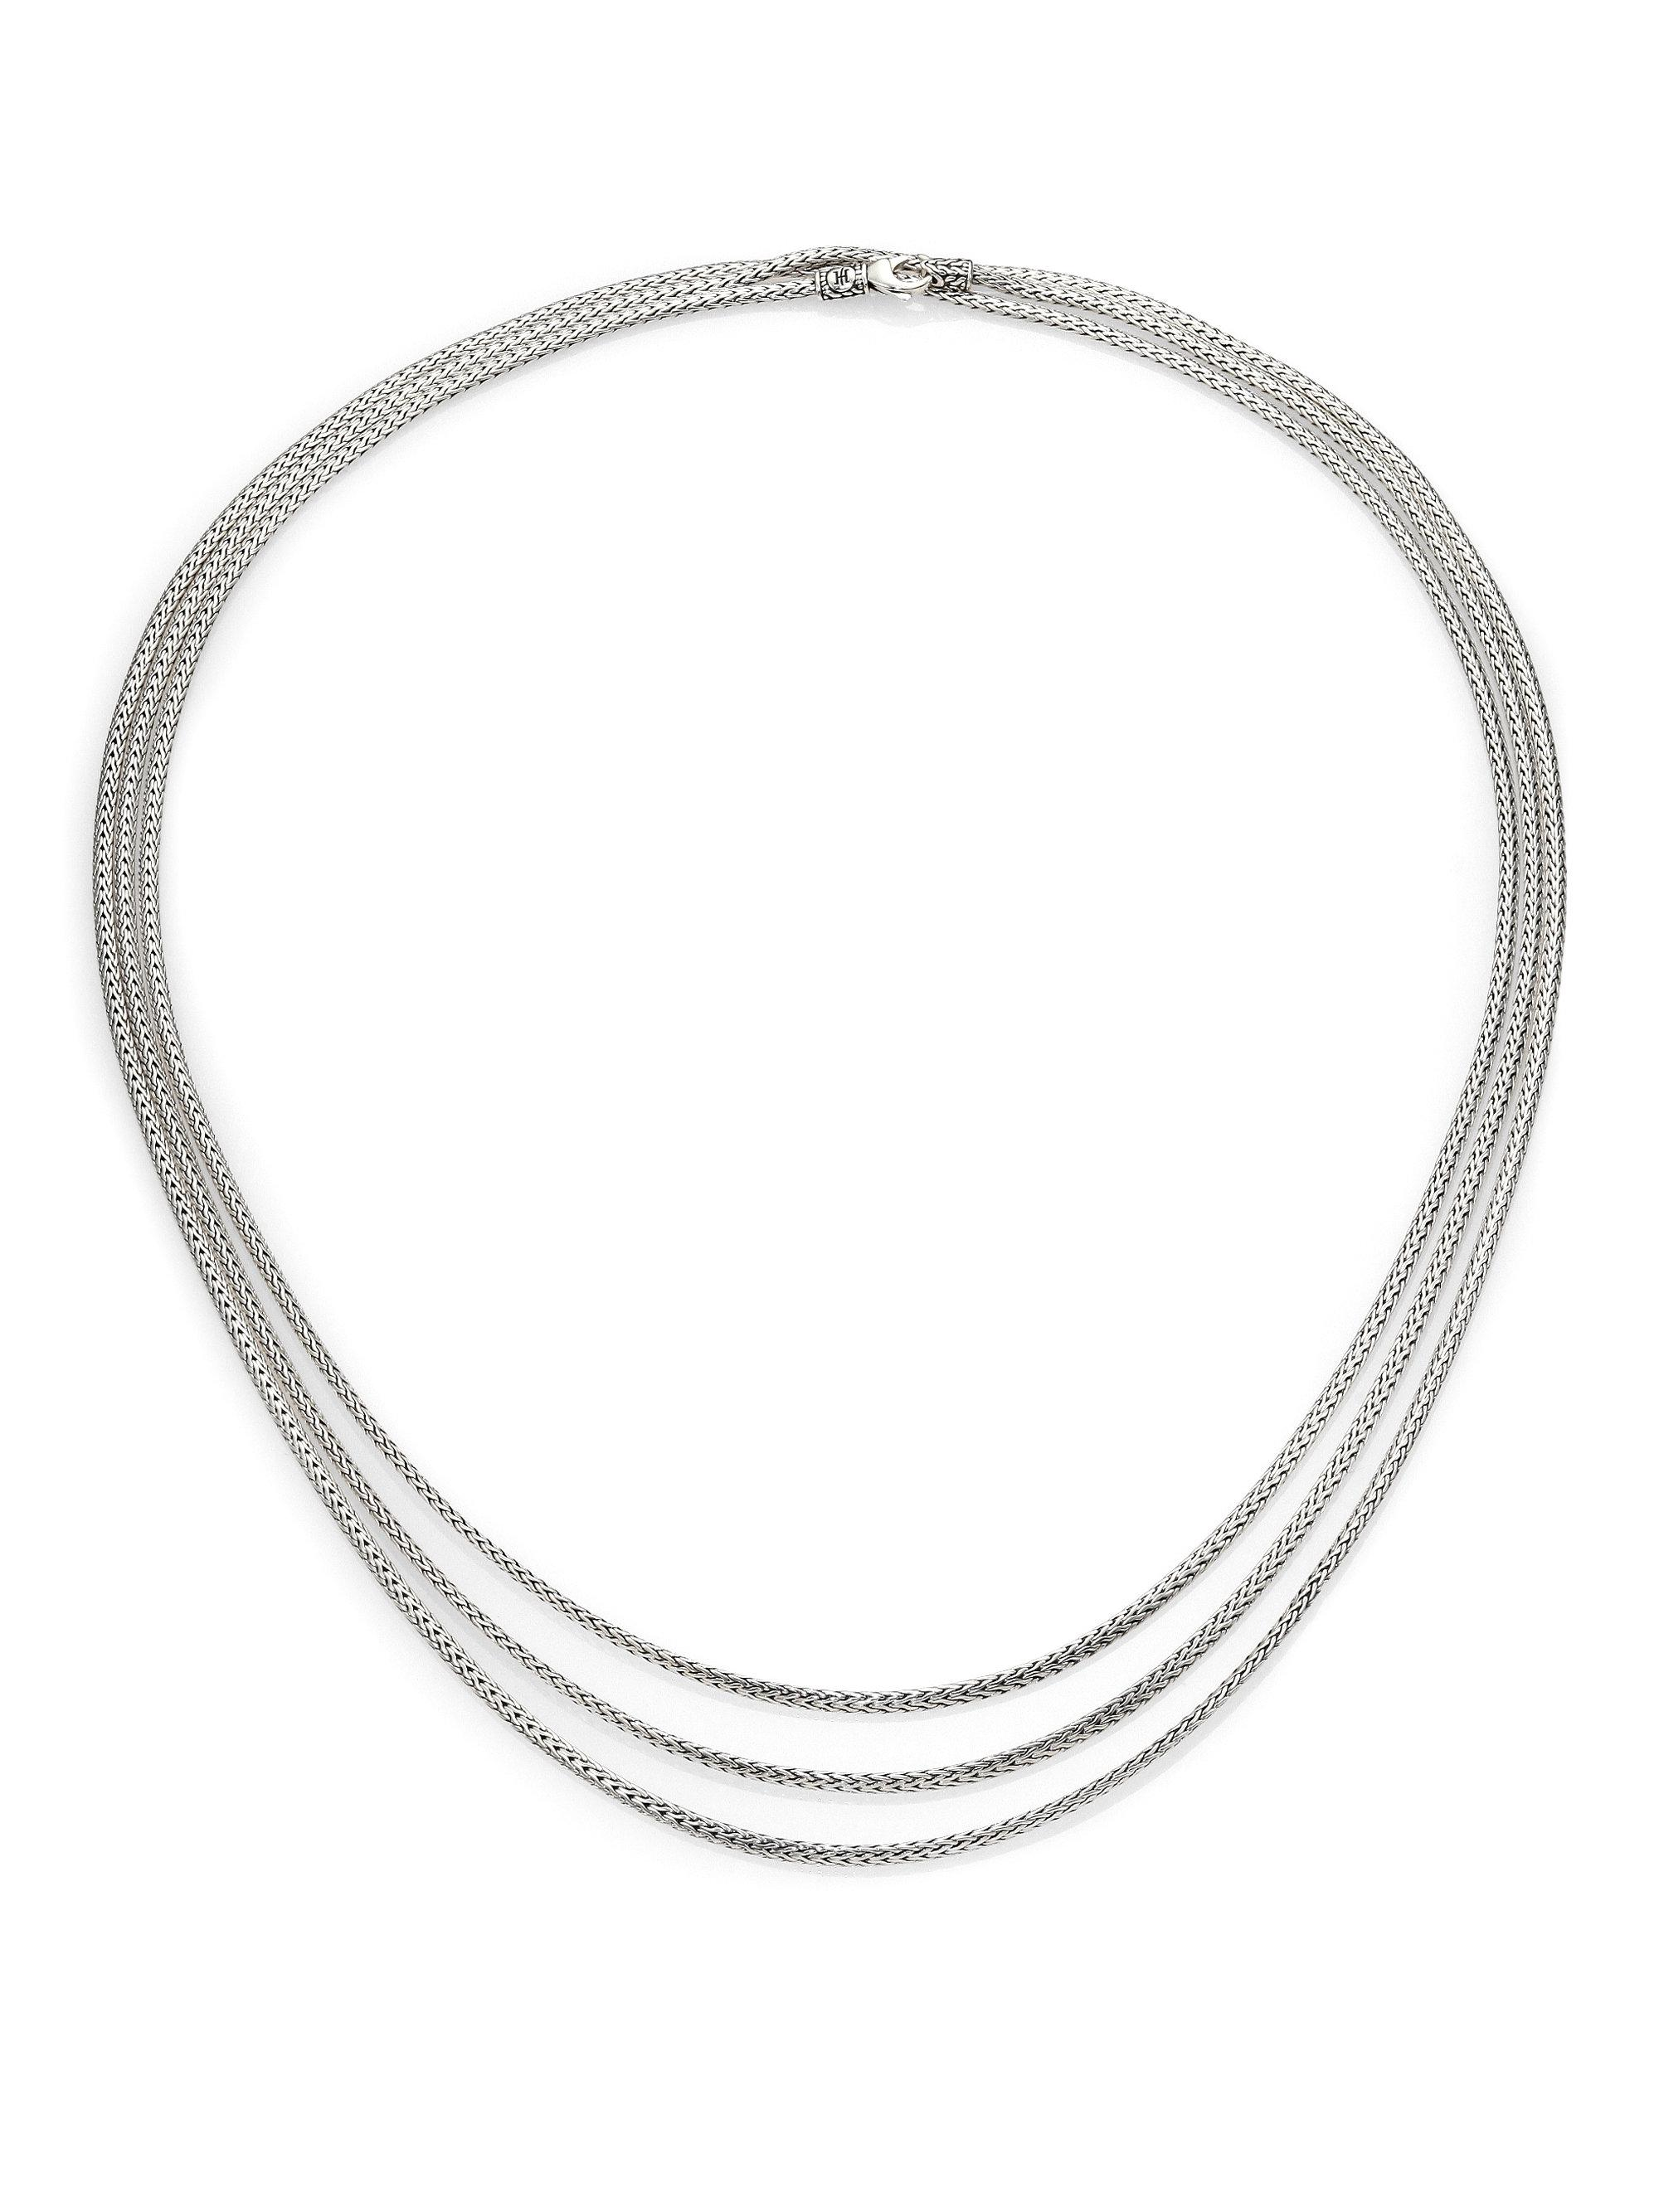 John Hardy Classic Chain Silver Graduated Necklace